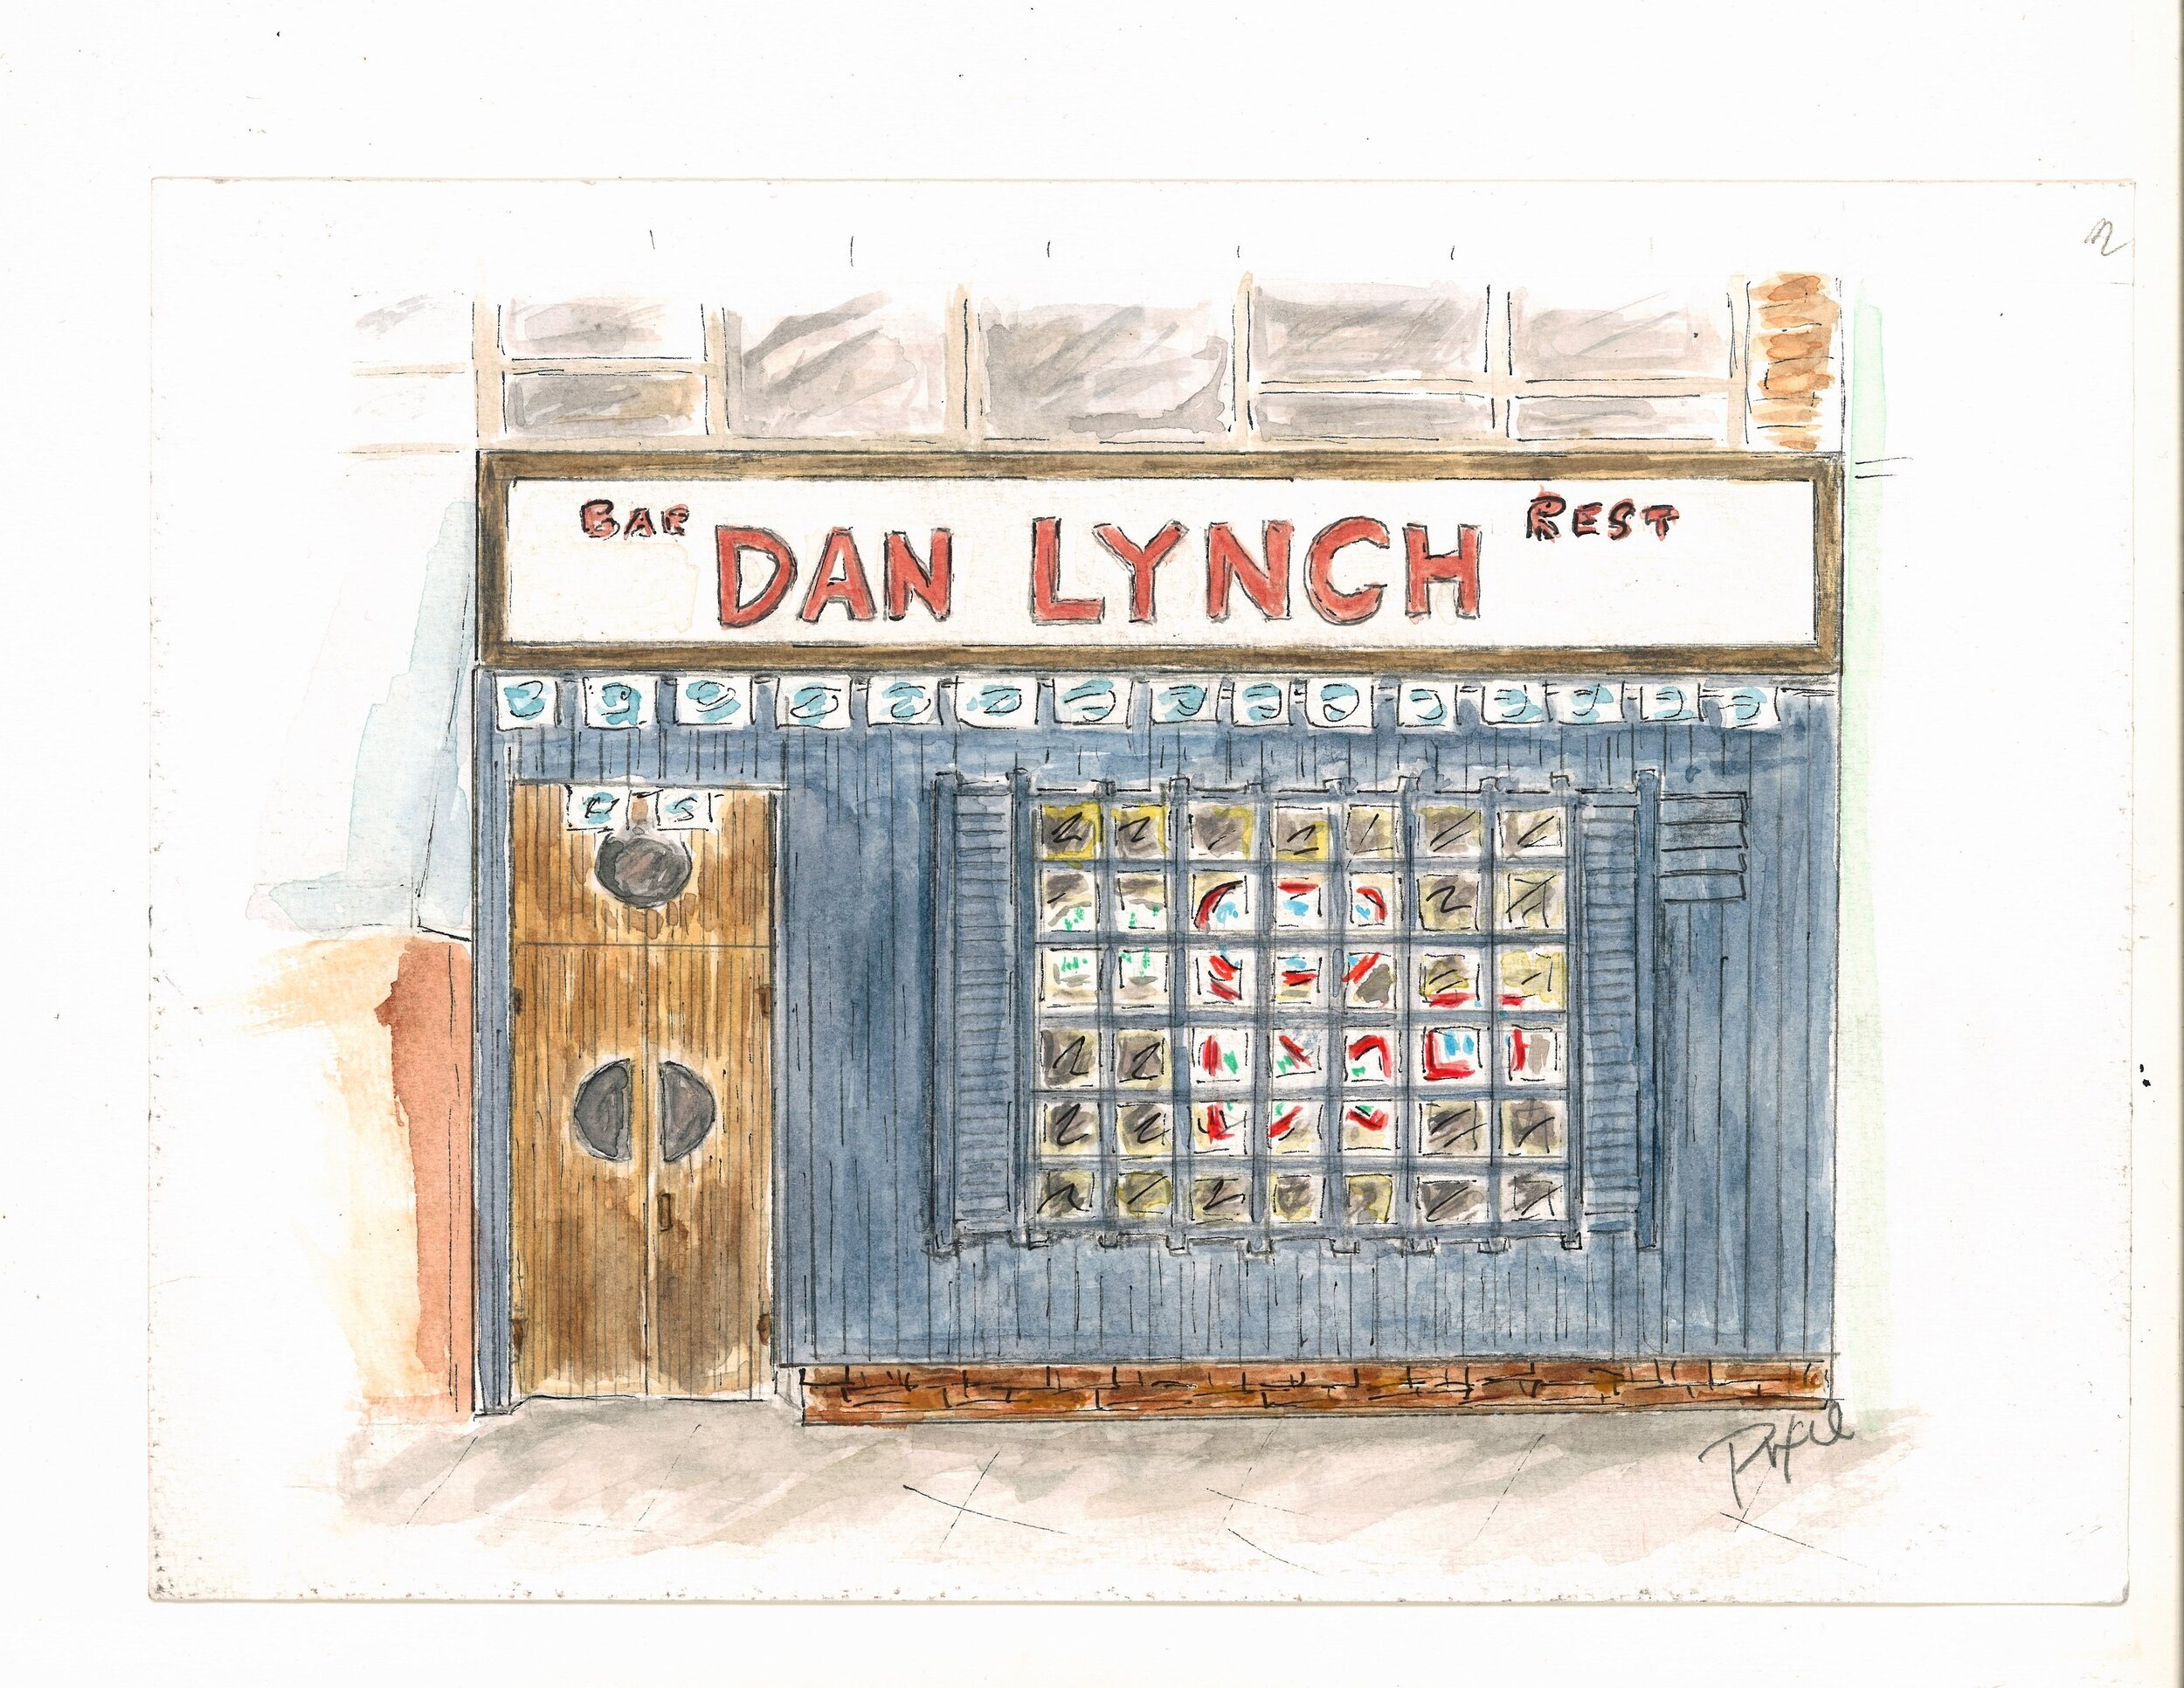 Dan Lynch Bar.jpg